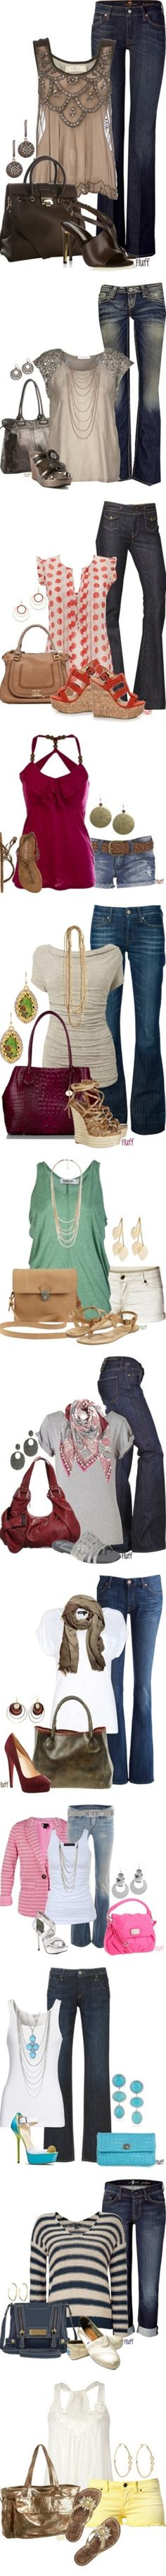 That first outfit is the perfect date night outfit.